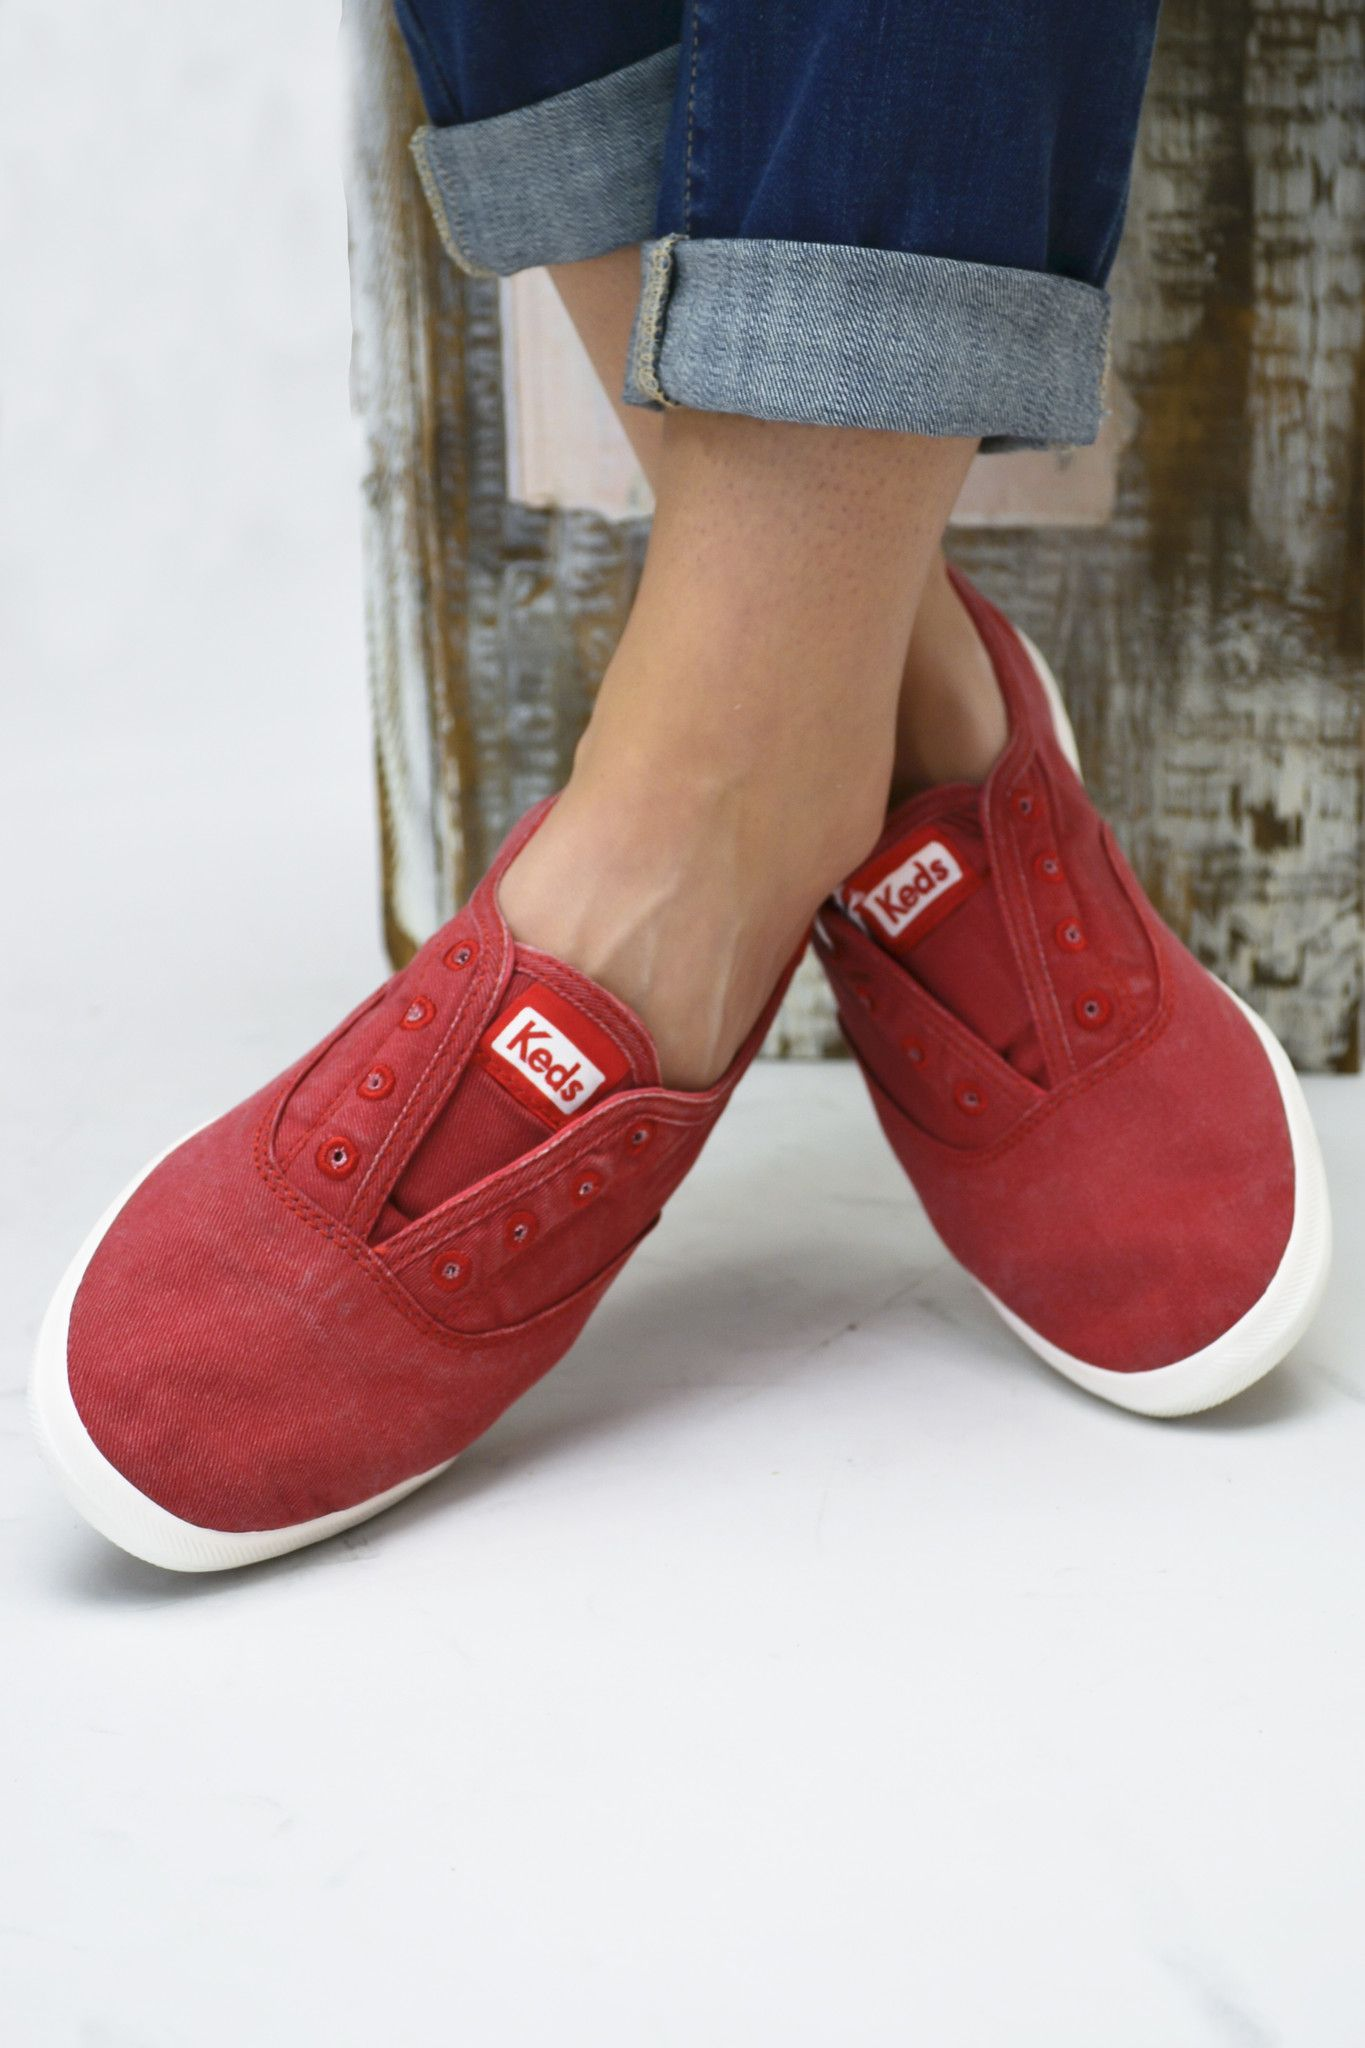 Chillax Washed Out Red Keds | Red keds